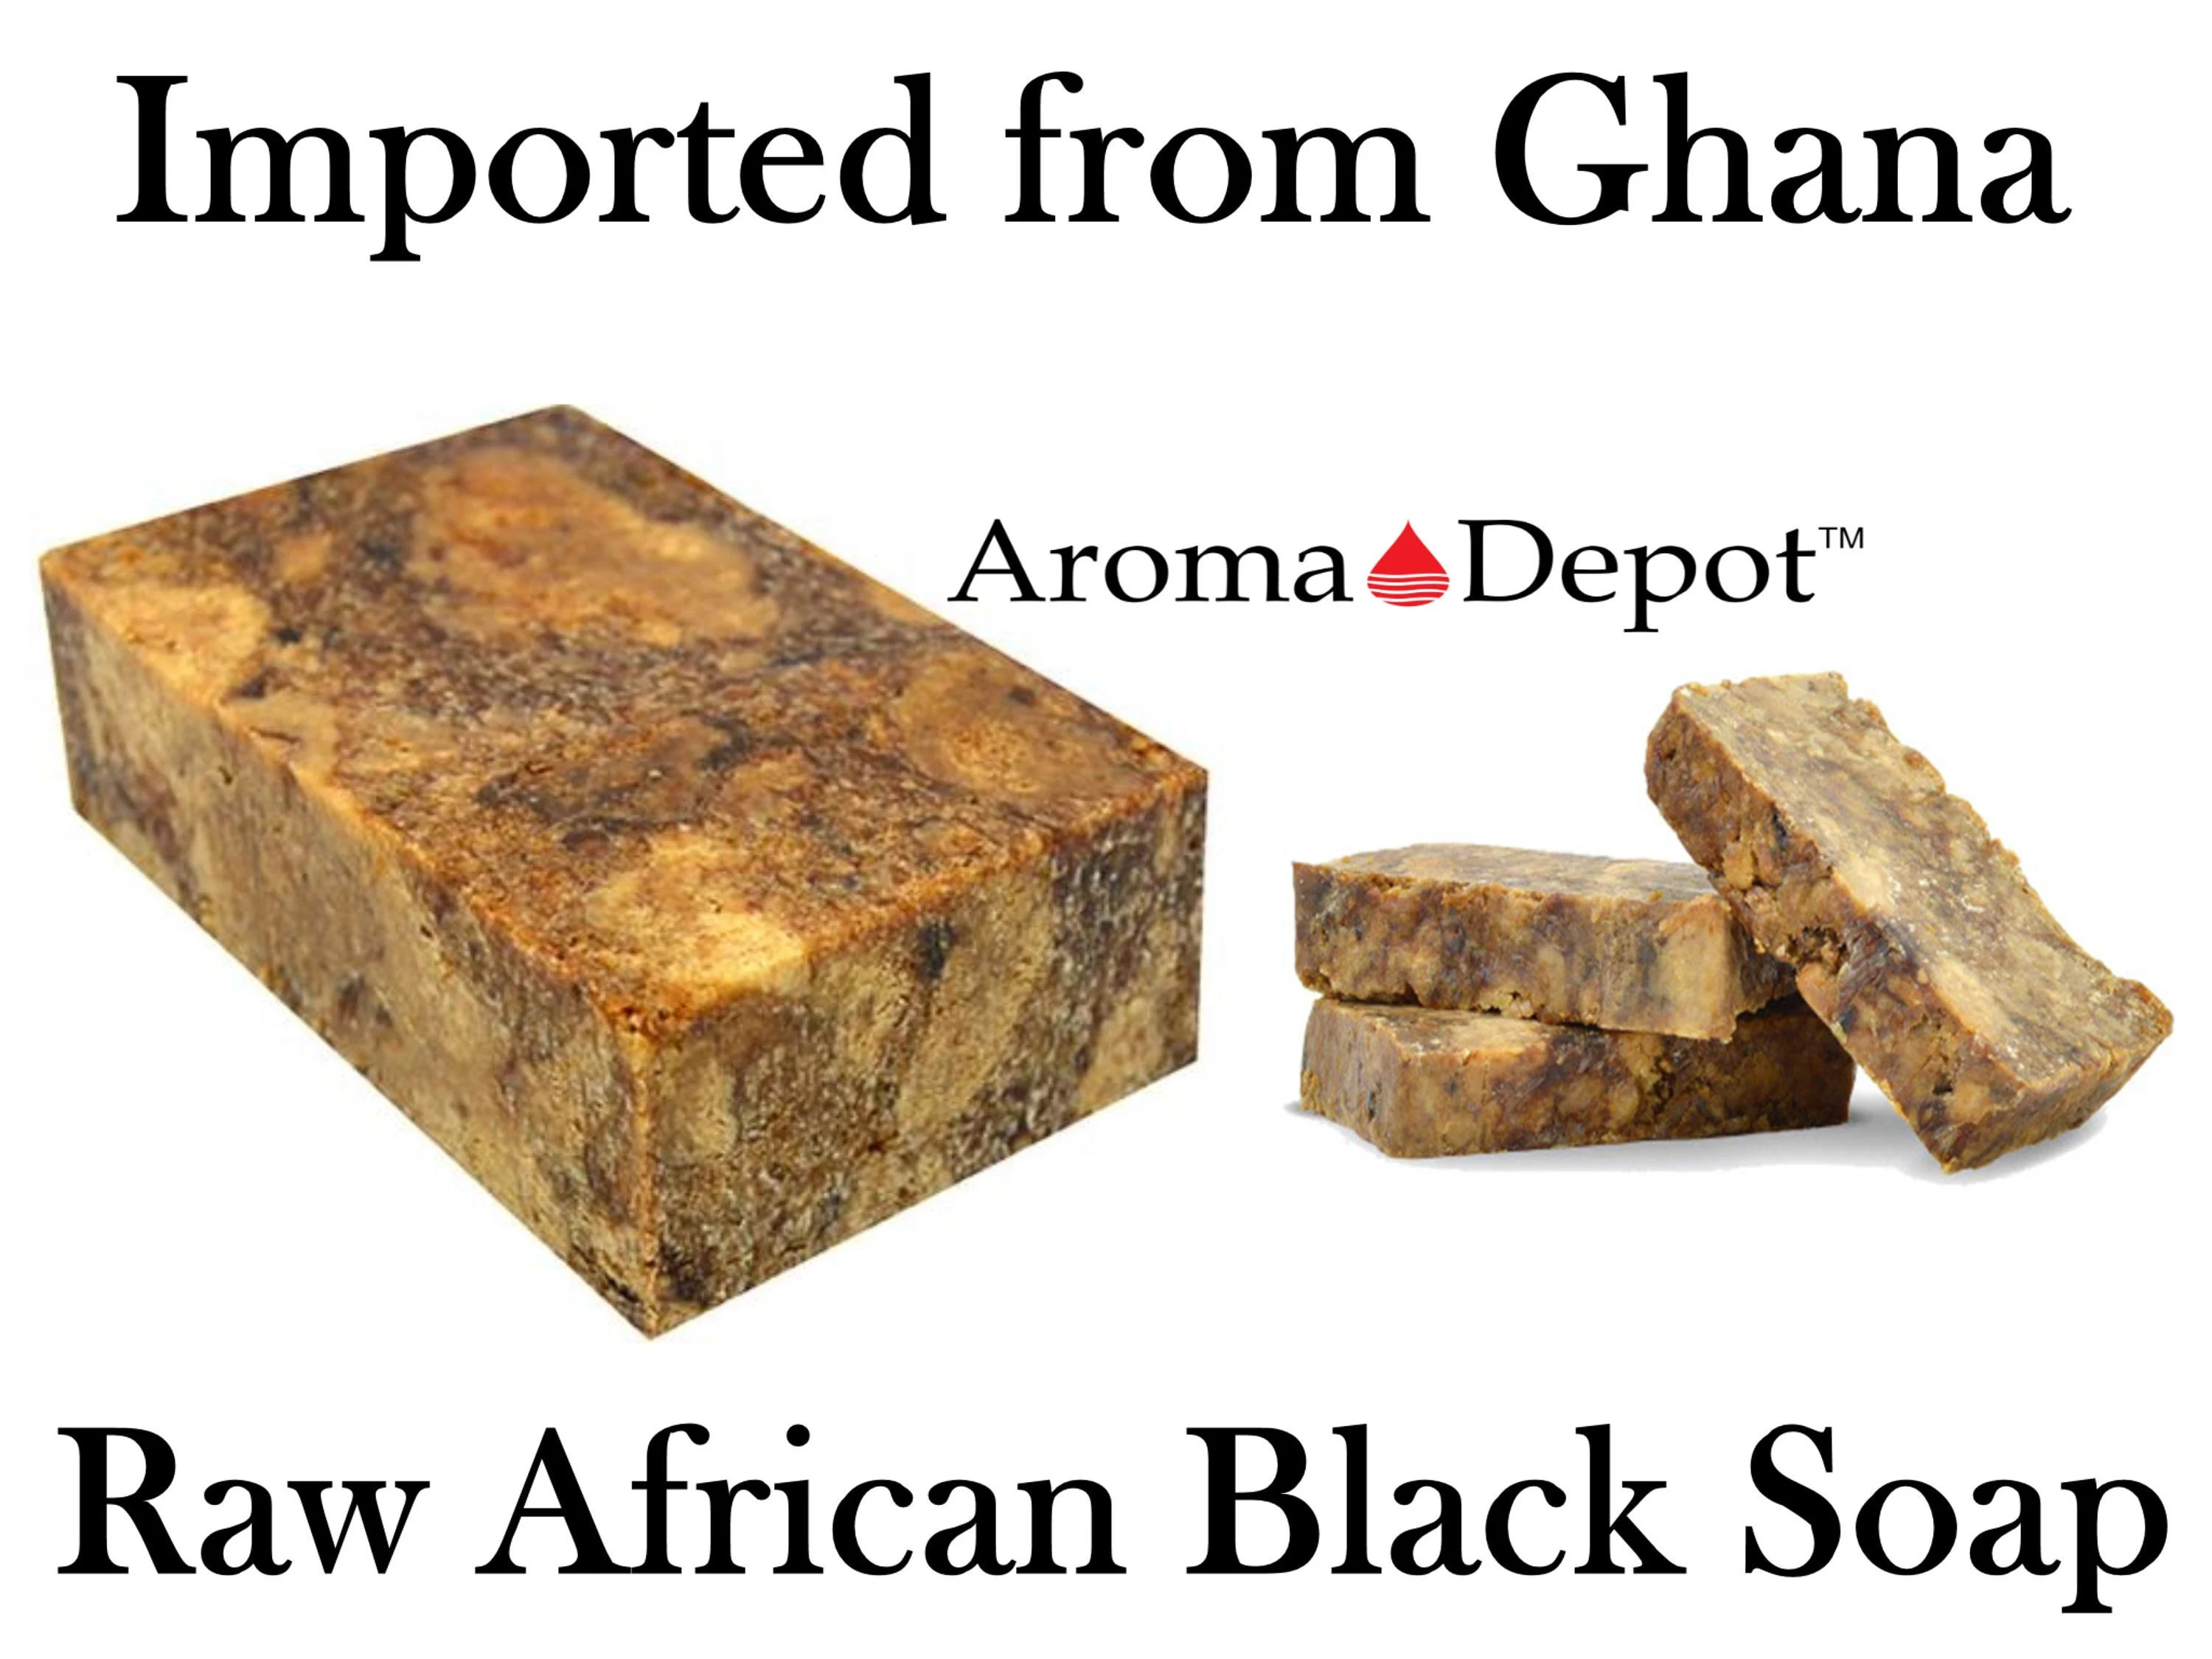 Badezimmer Teppich Depot African Black Soap Bar 100 Raw Pure Wholesale 2 Oz Up To 50 Lbs From Ghana